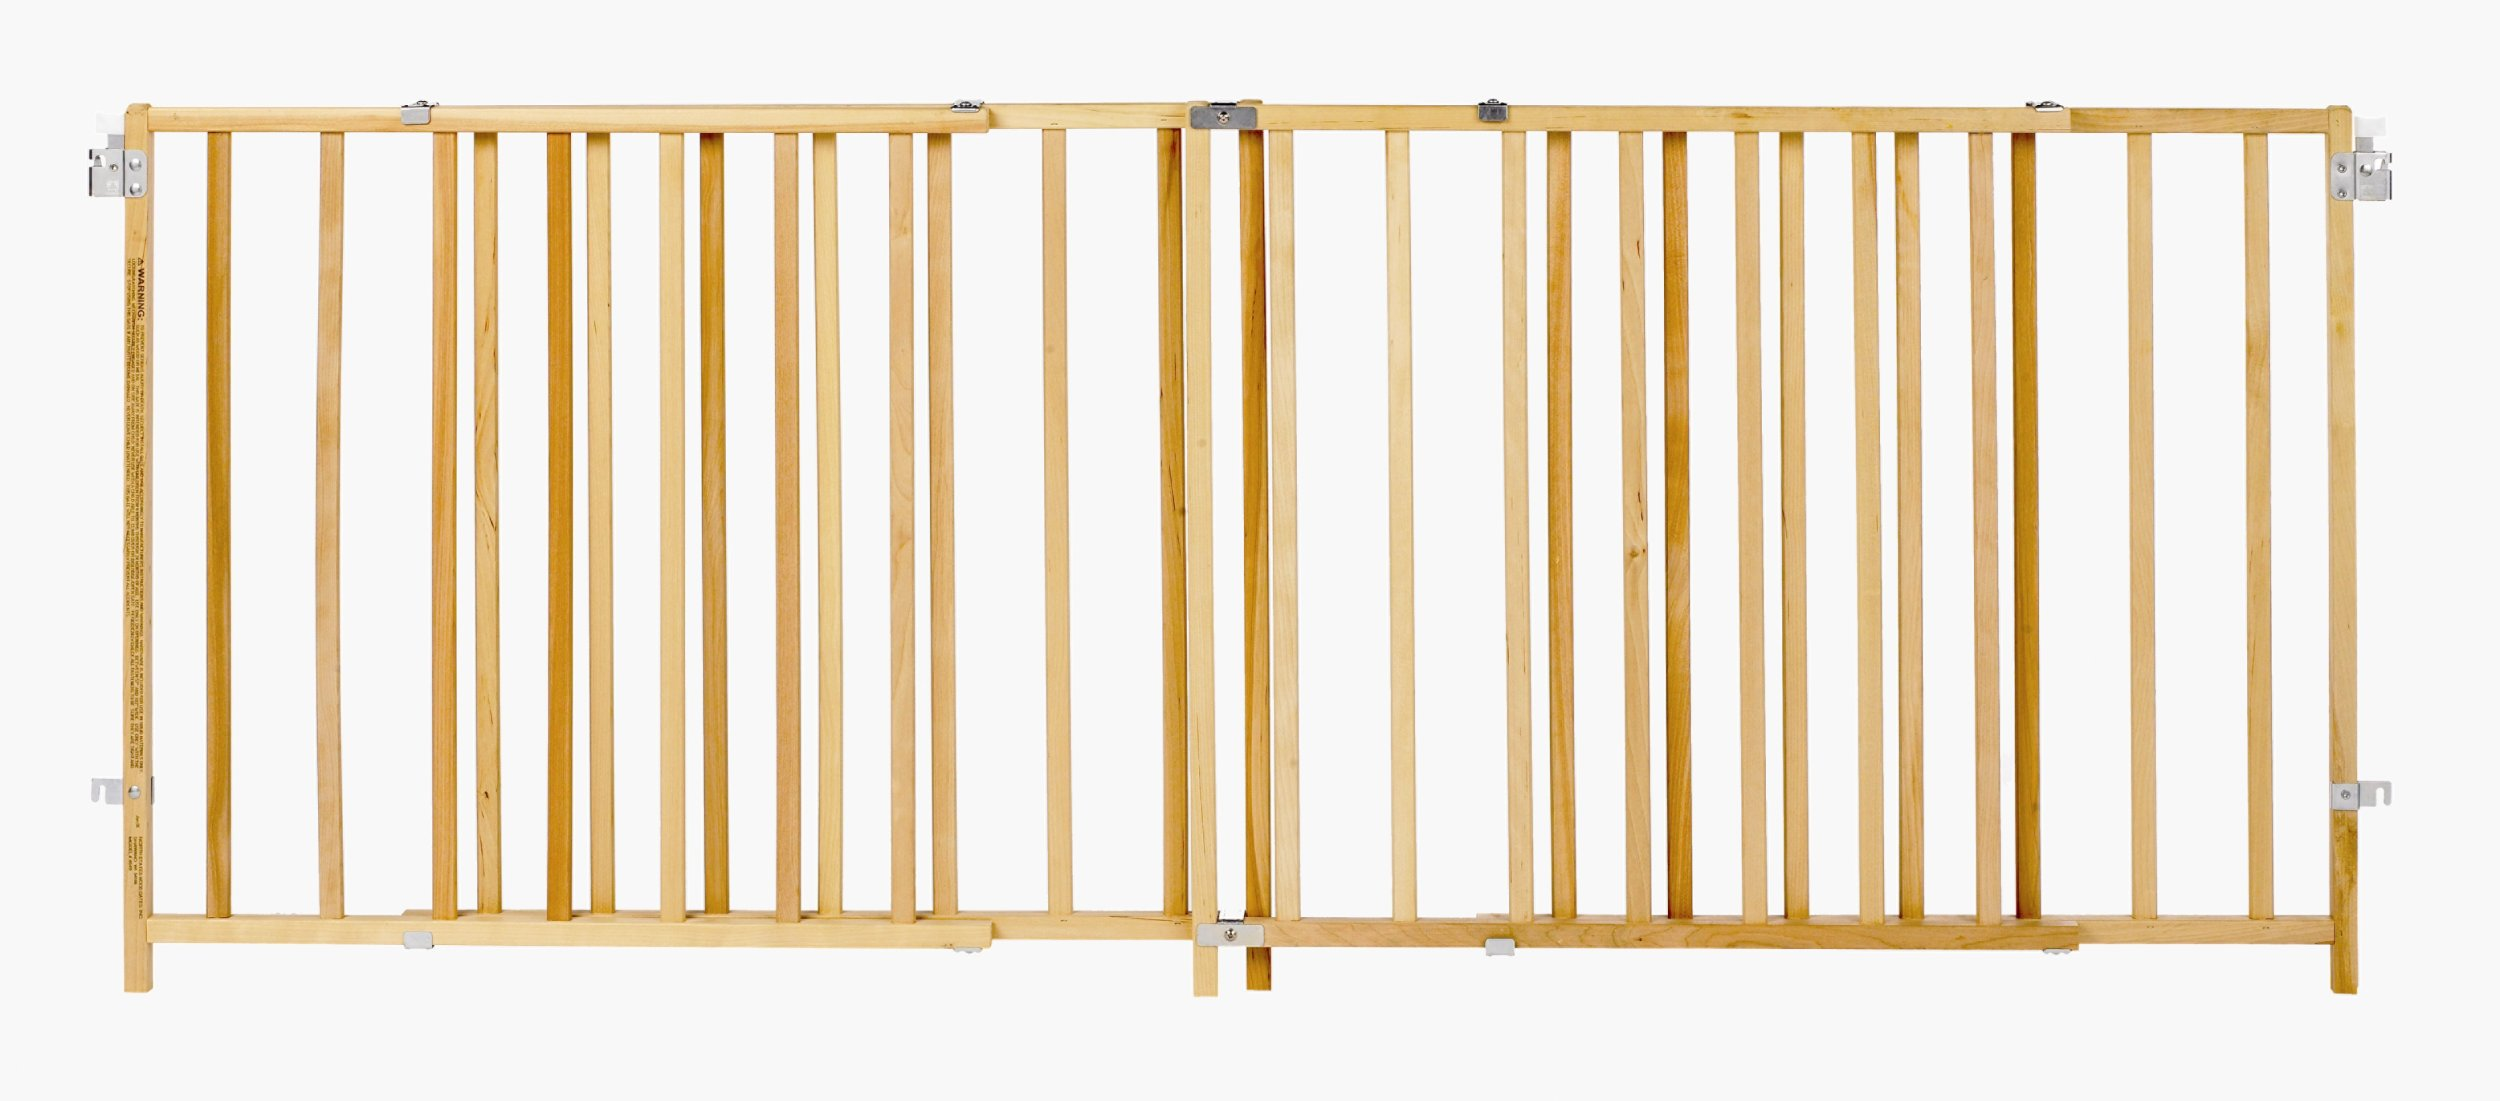 Supergate X Wide Swing Wood Gate, Fits Spaces between 60'' and 103'' Wide by North States